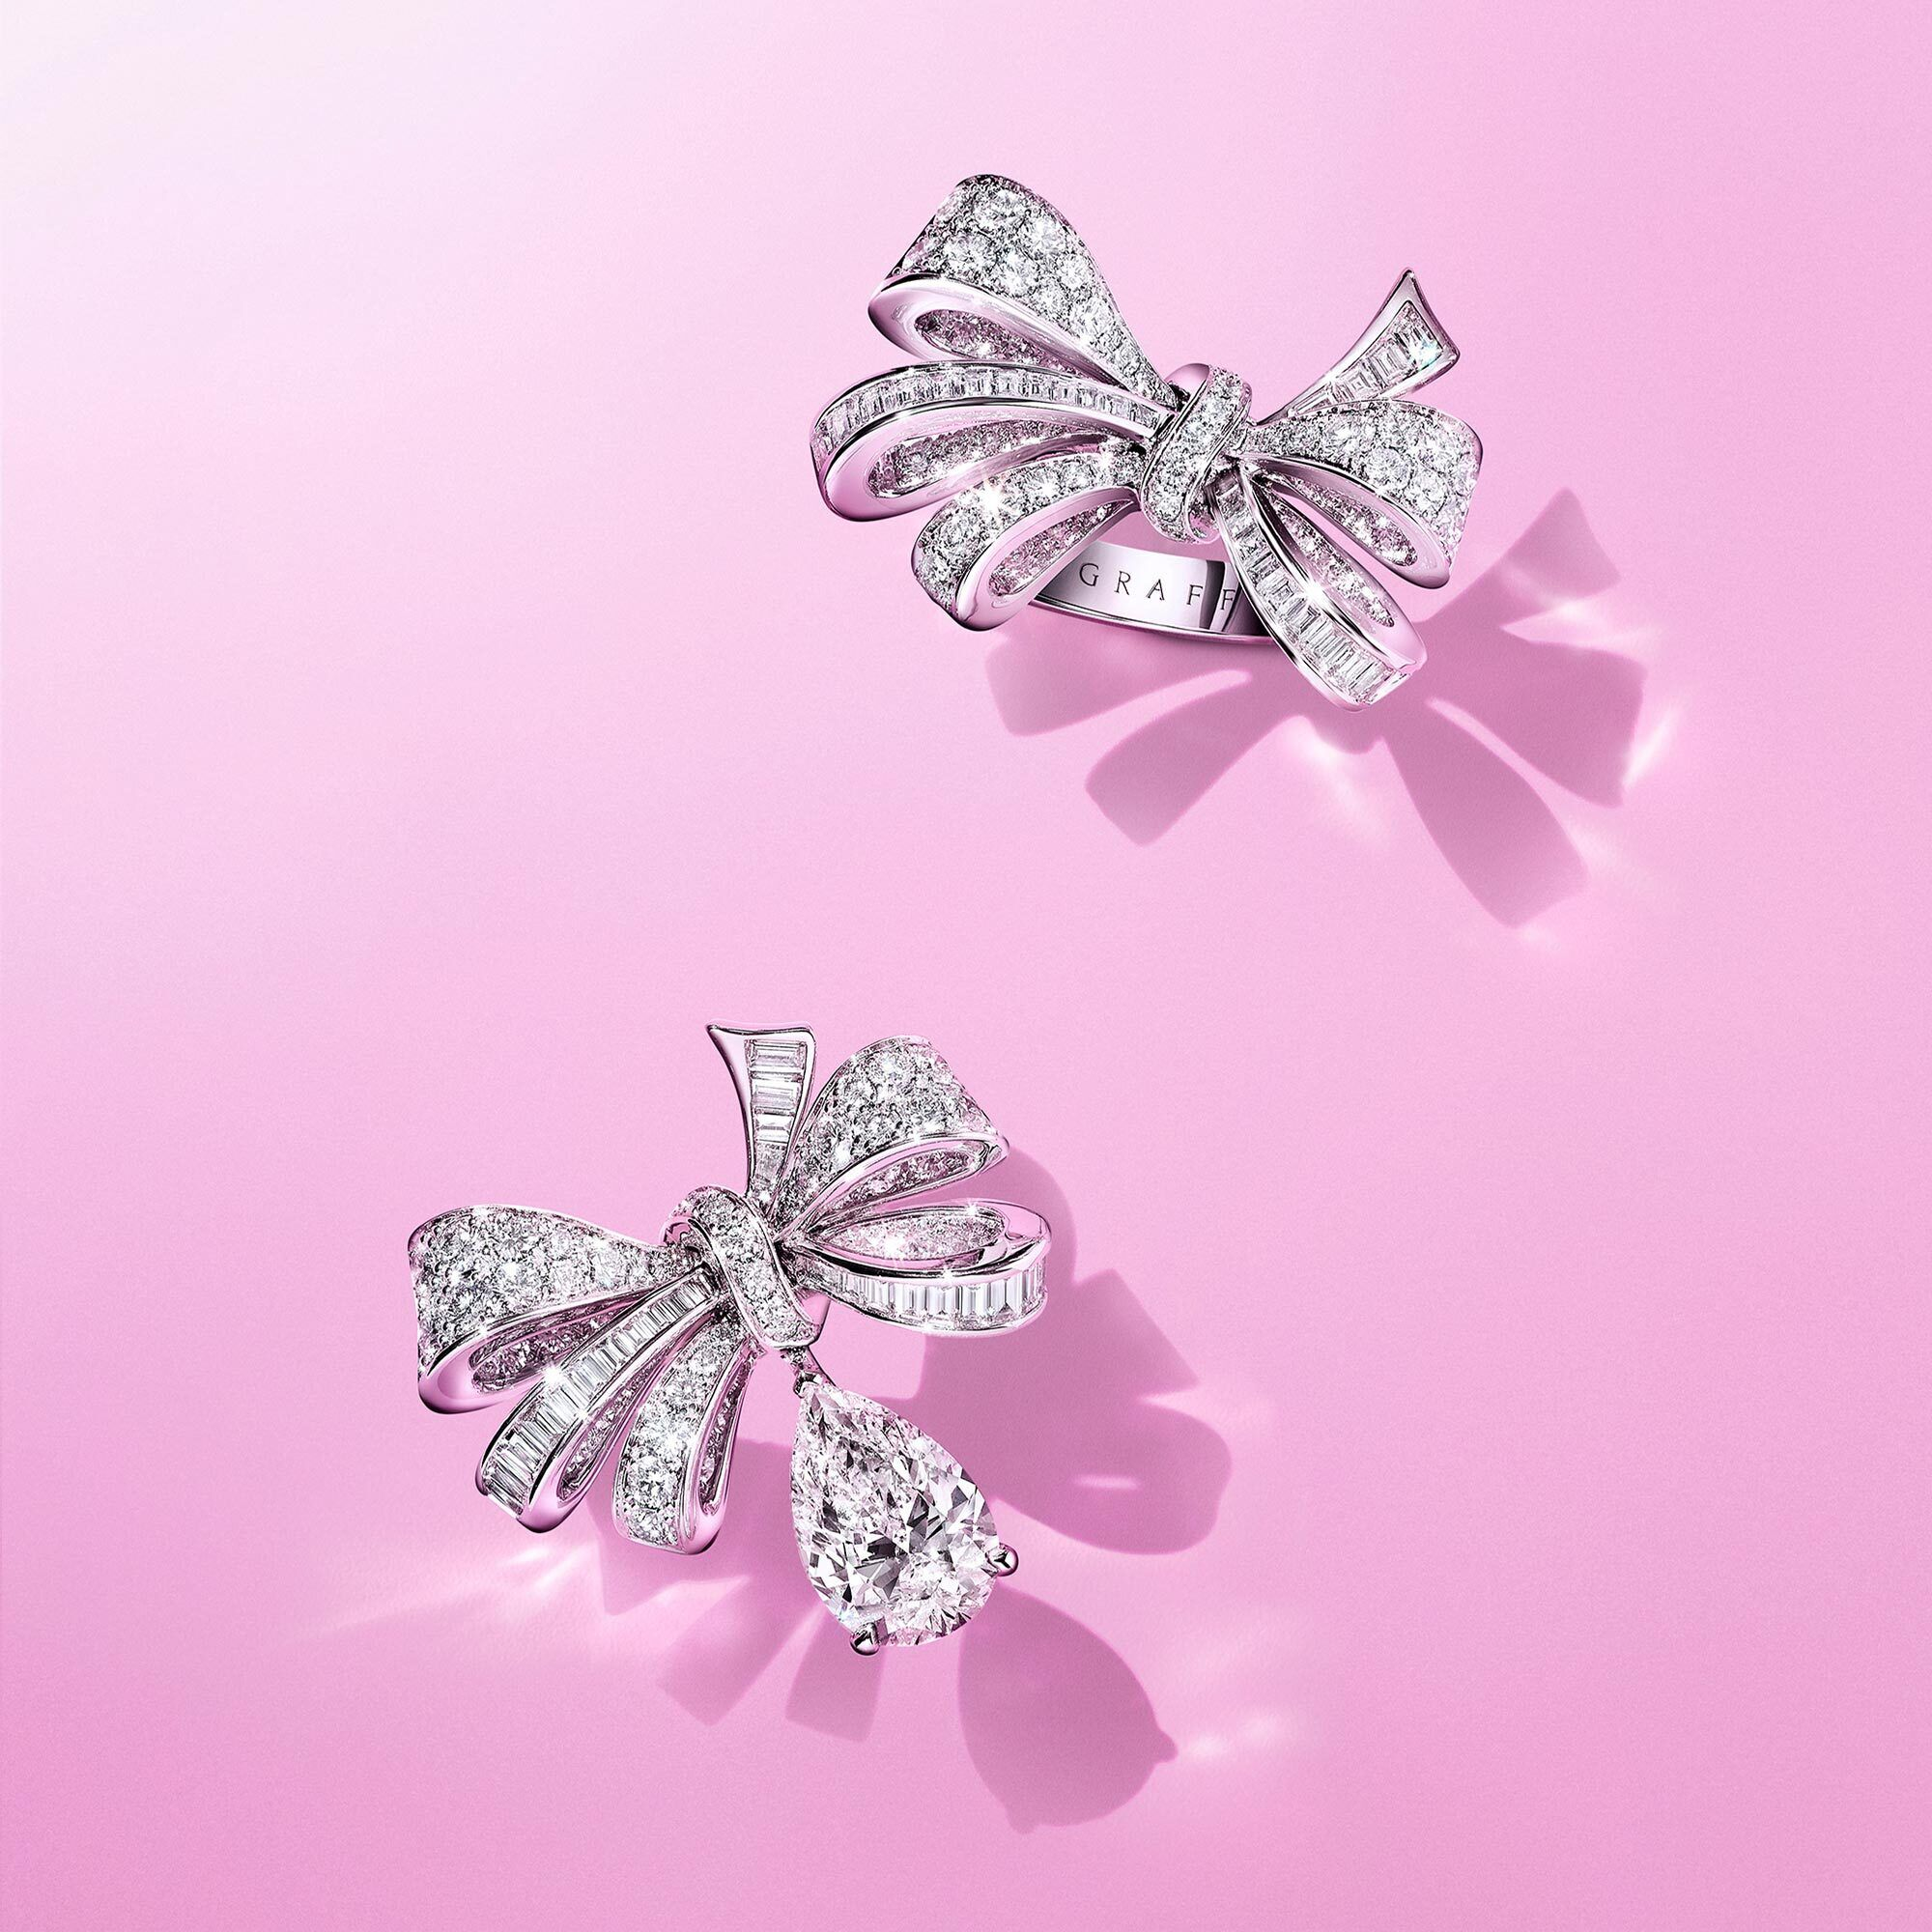 Graff Tilda's Bow rings on pink background